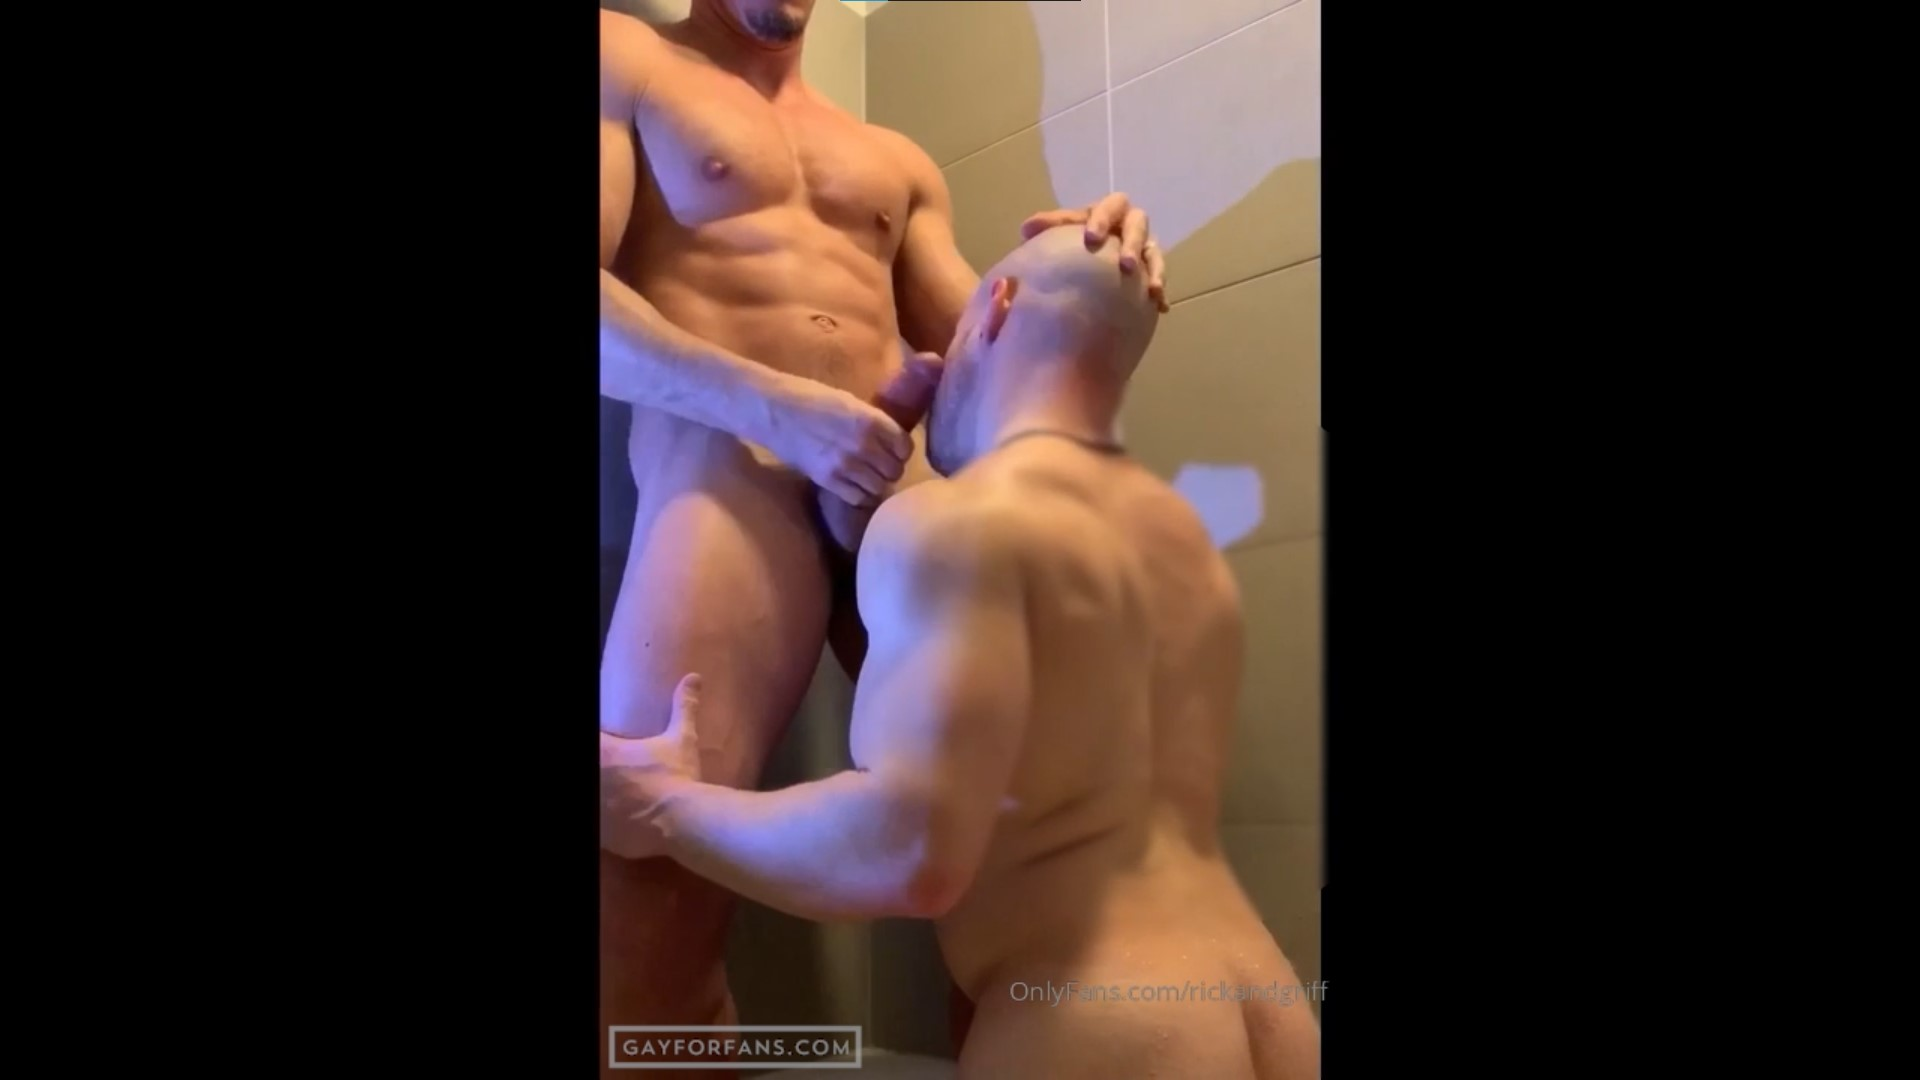 Quick blow job in the shower - RickandGriff